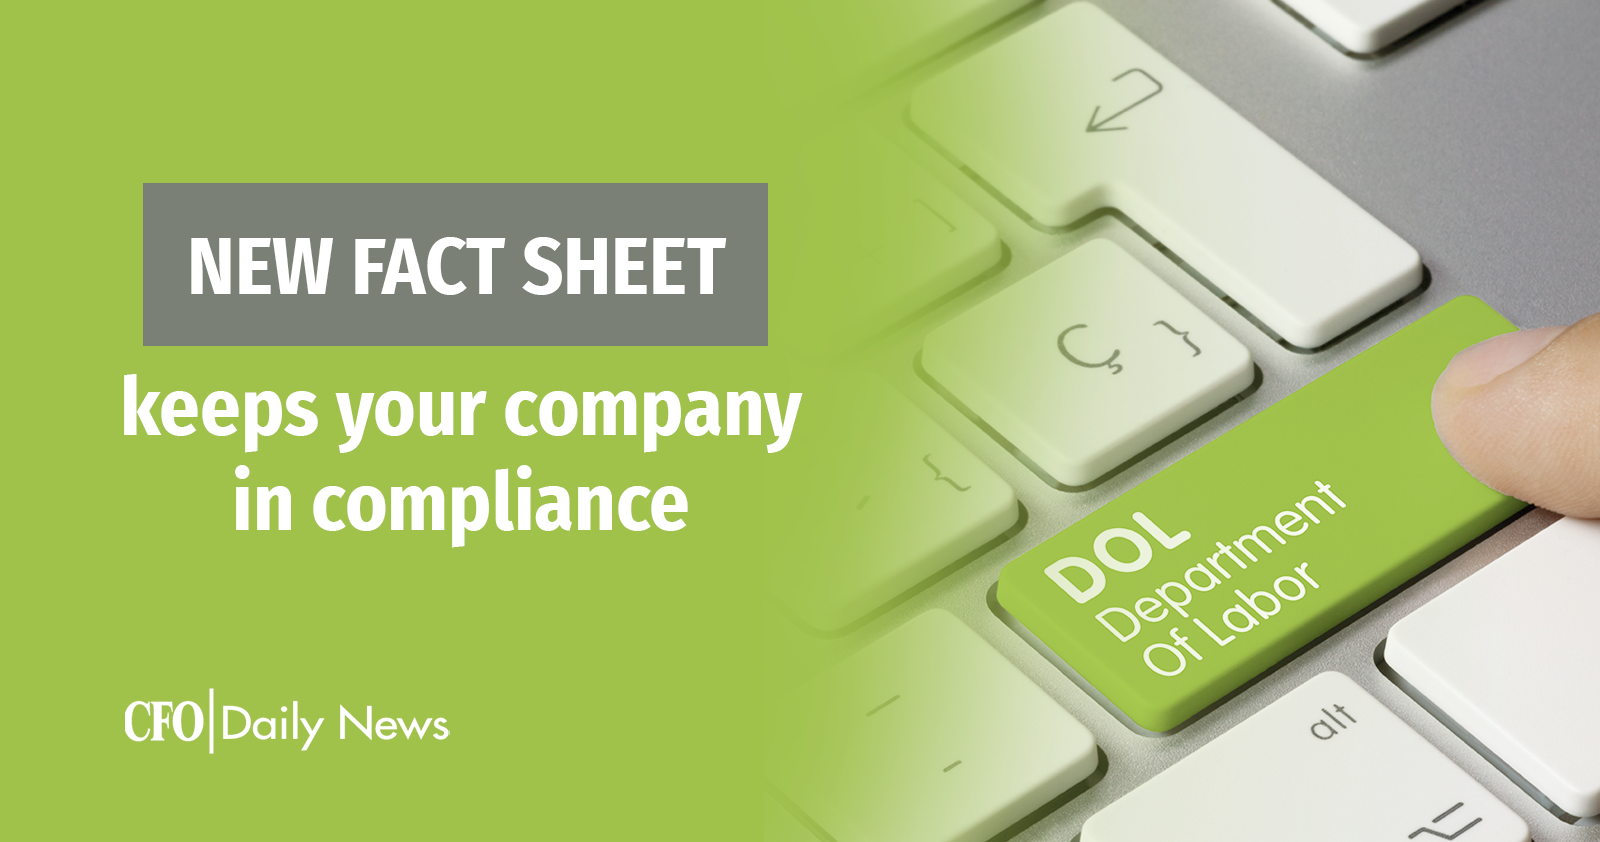 new fact sheet keeps your company in compliance